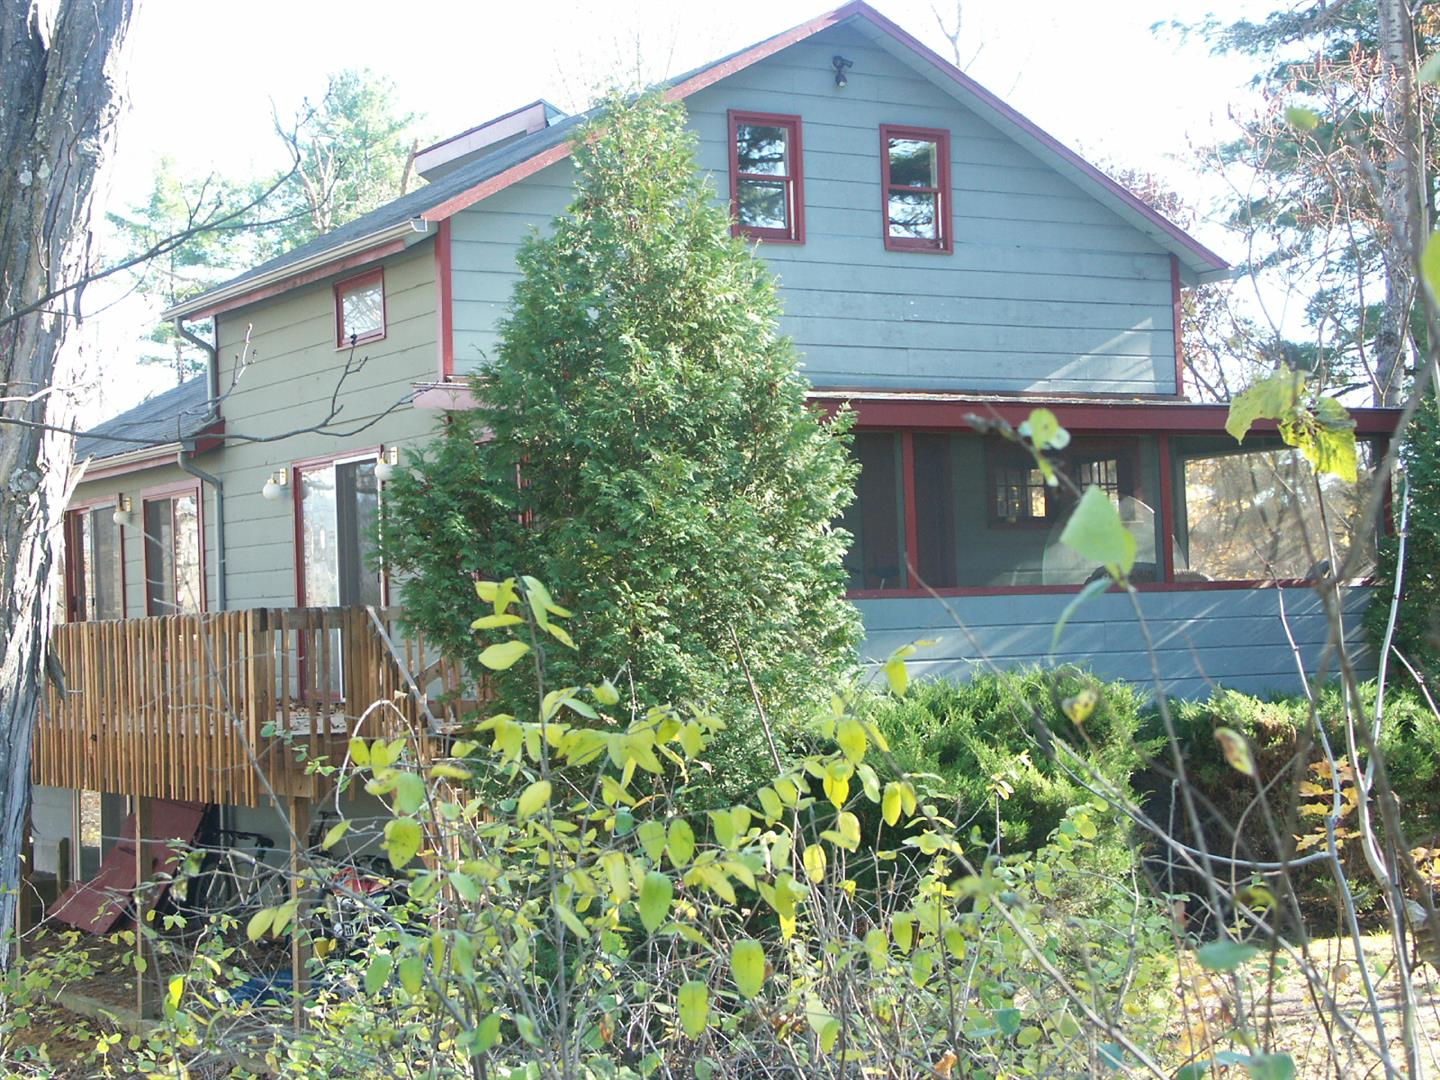 GATEHOUSE RENTAL Bolton Landing NY 12814 id-1821746 homes for sale